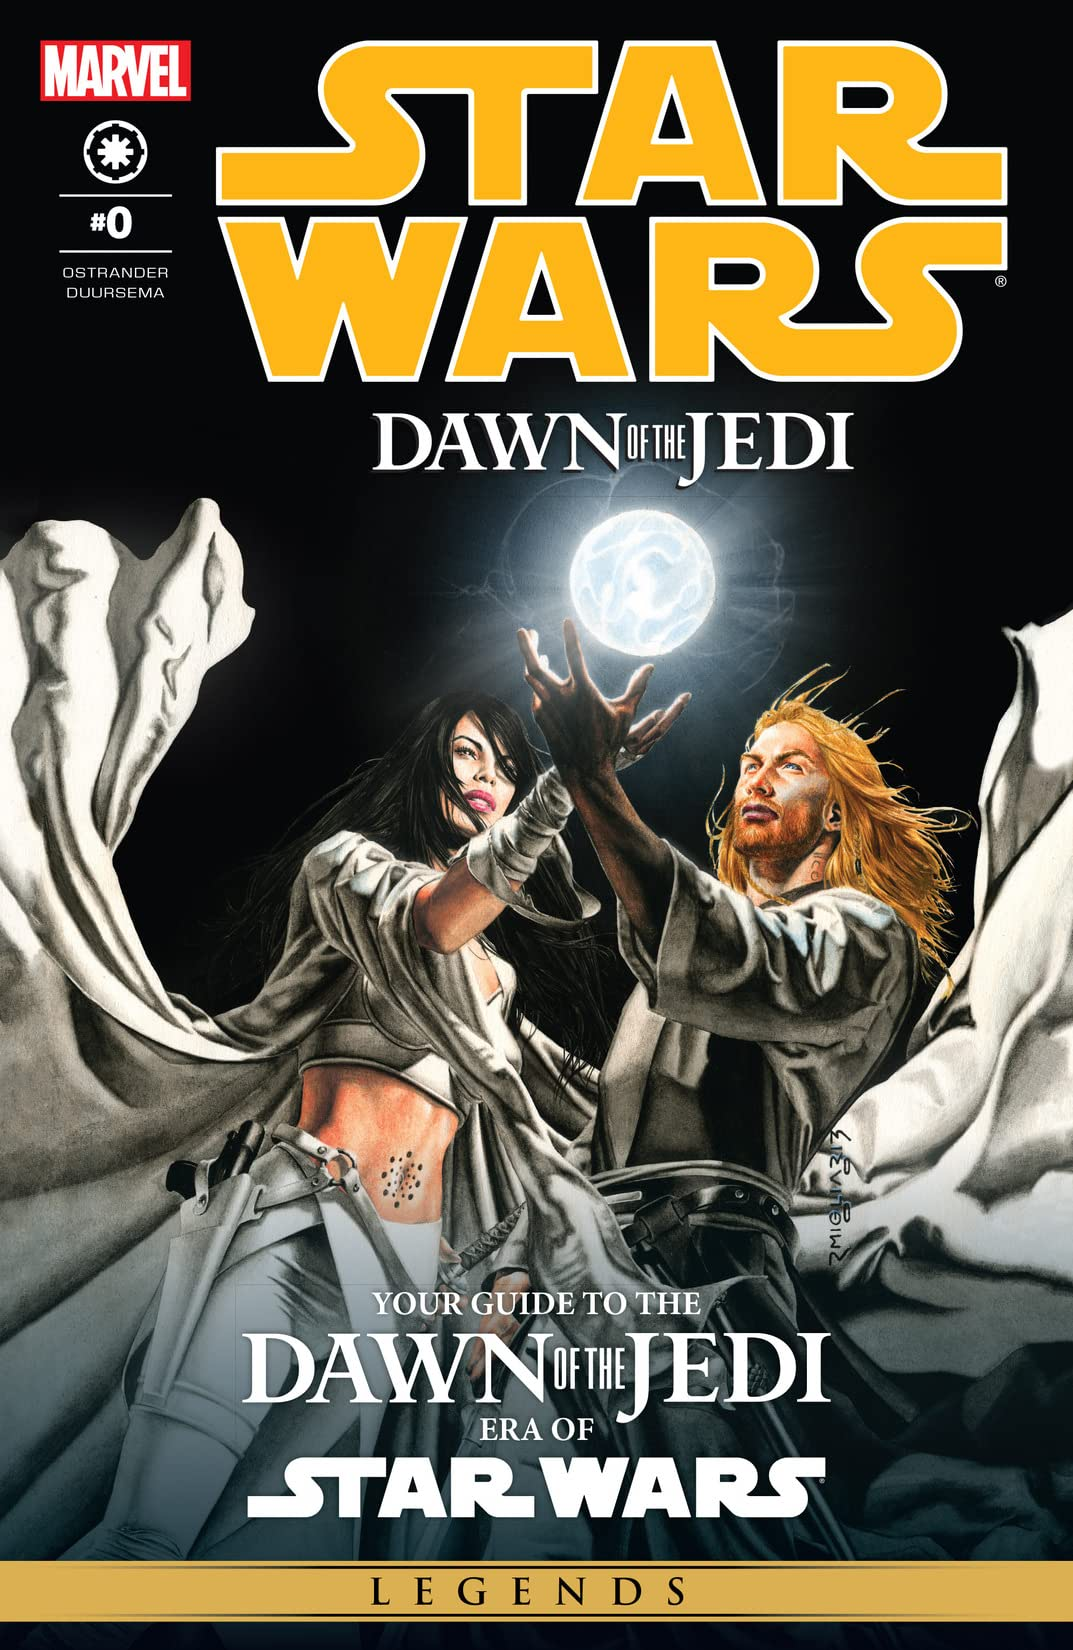 Star Wars: Dawn of the Jedi (2012) #0